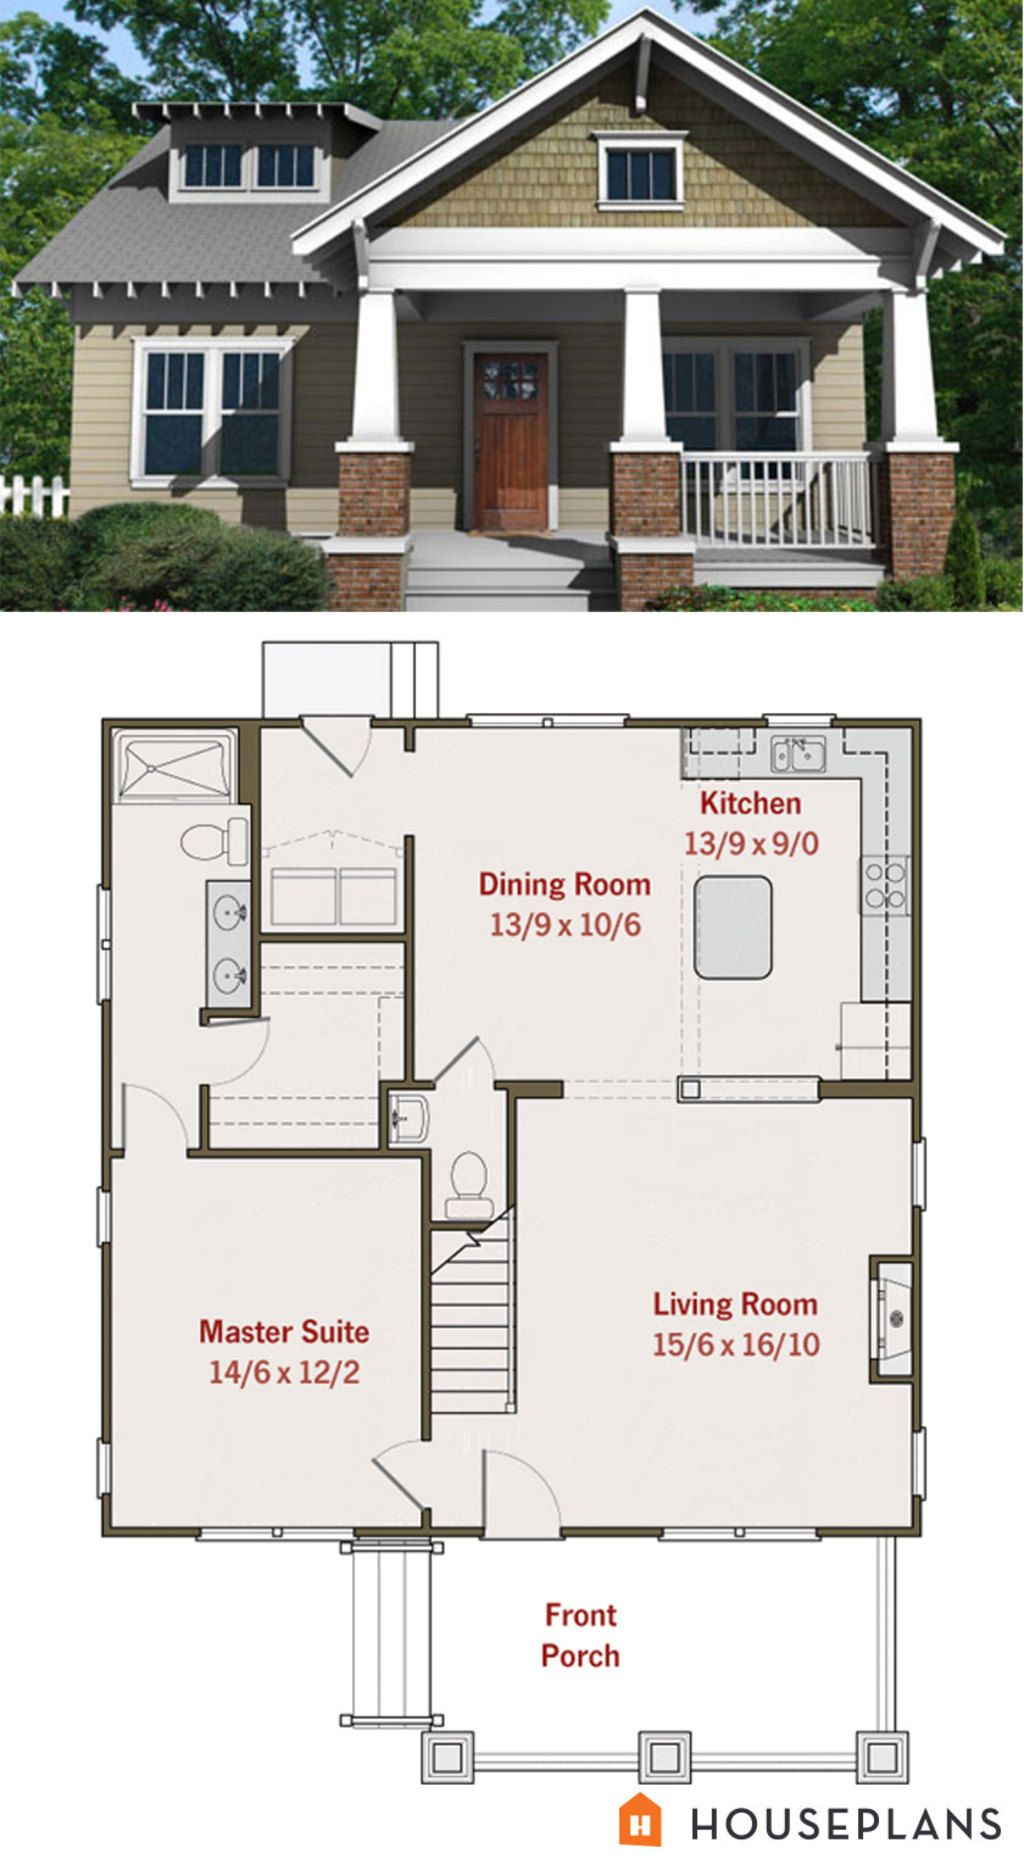 Small Craftsman Bungalow Floor Plan And Elevation. (Found My Moms Dream  Home For The Future)! Nice Design